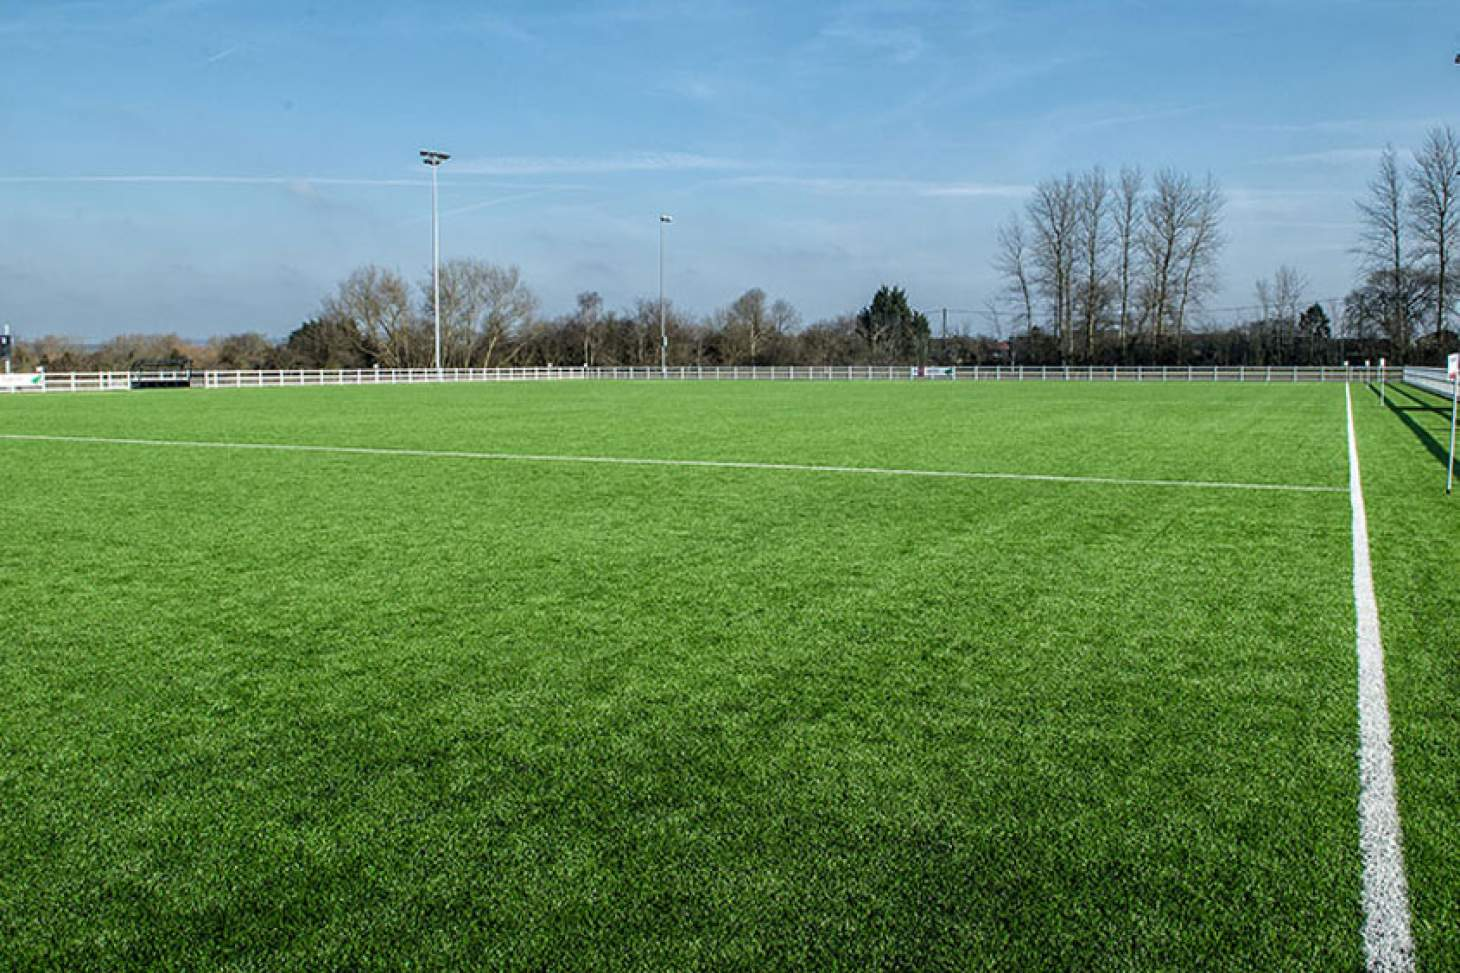 PlayFootball Chiswick 5 a side | 3G Astroturf football pitch